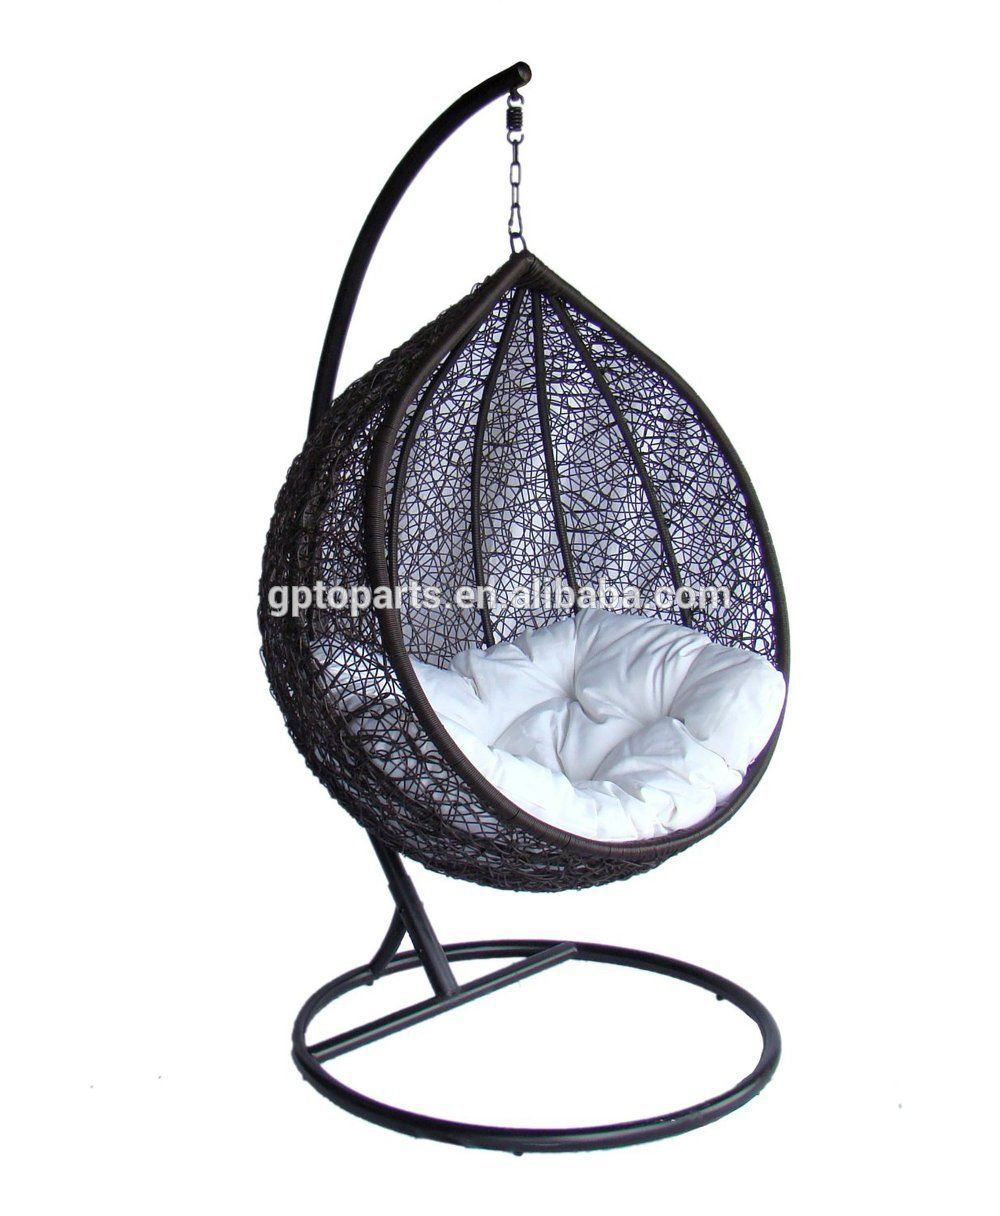 Rattan Hanging Egg Swing Chairs Outdoor Gazebo Swing Wicker Single Seat Chair Swingchair Swinging Chair Hanging Chair Swing Chair Outdoor